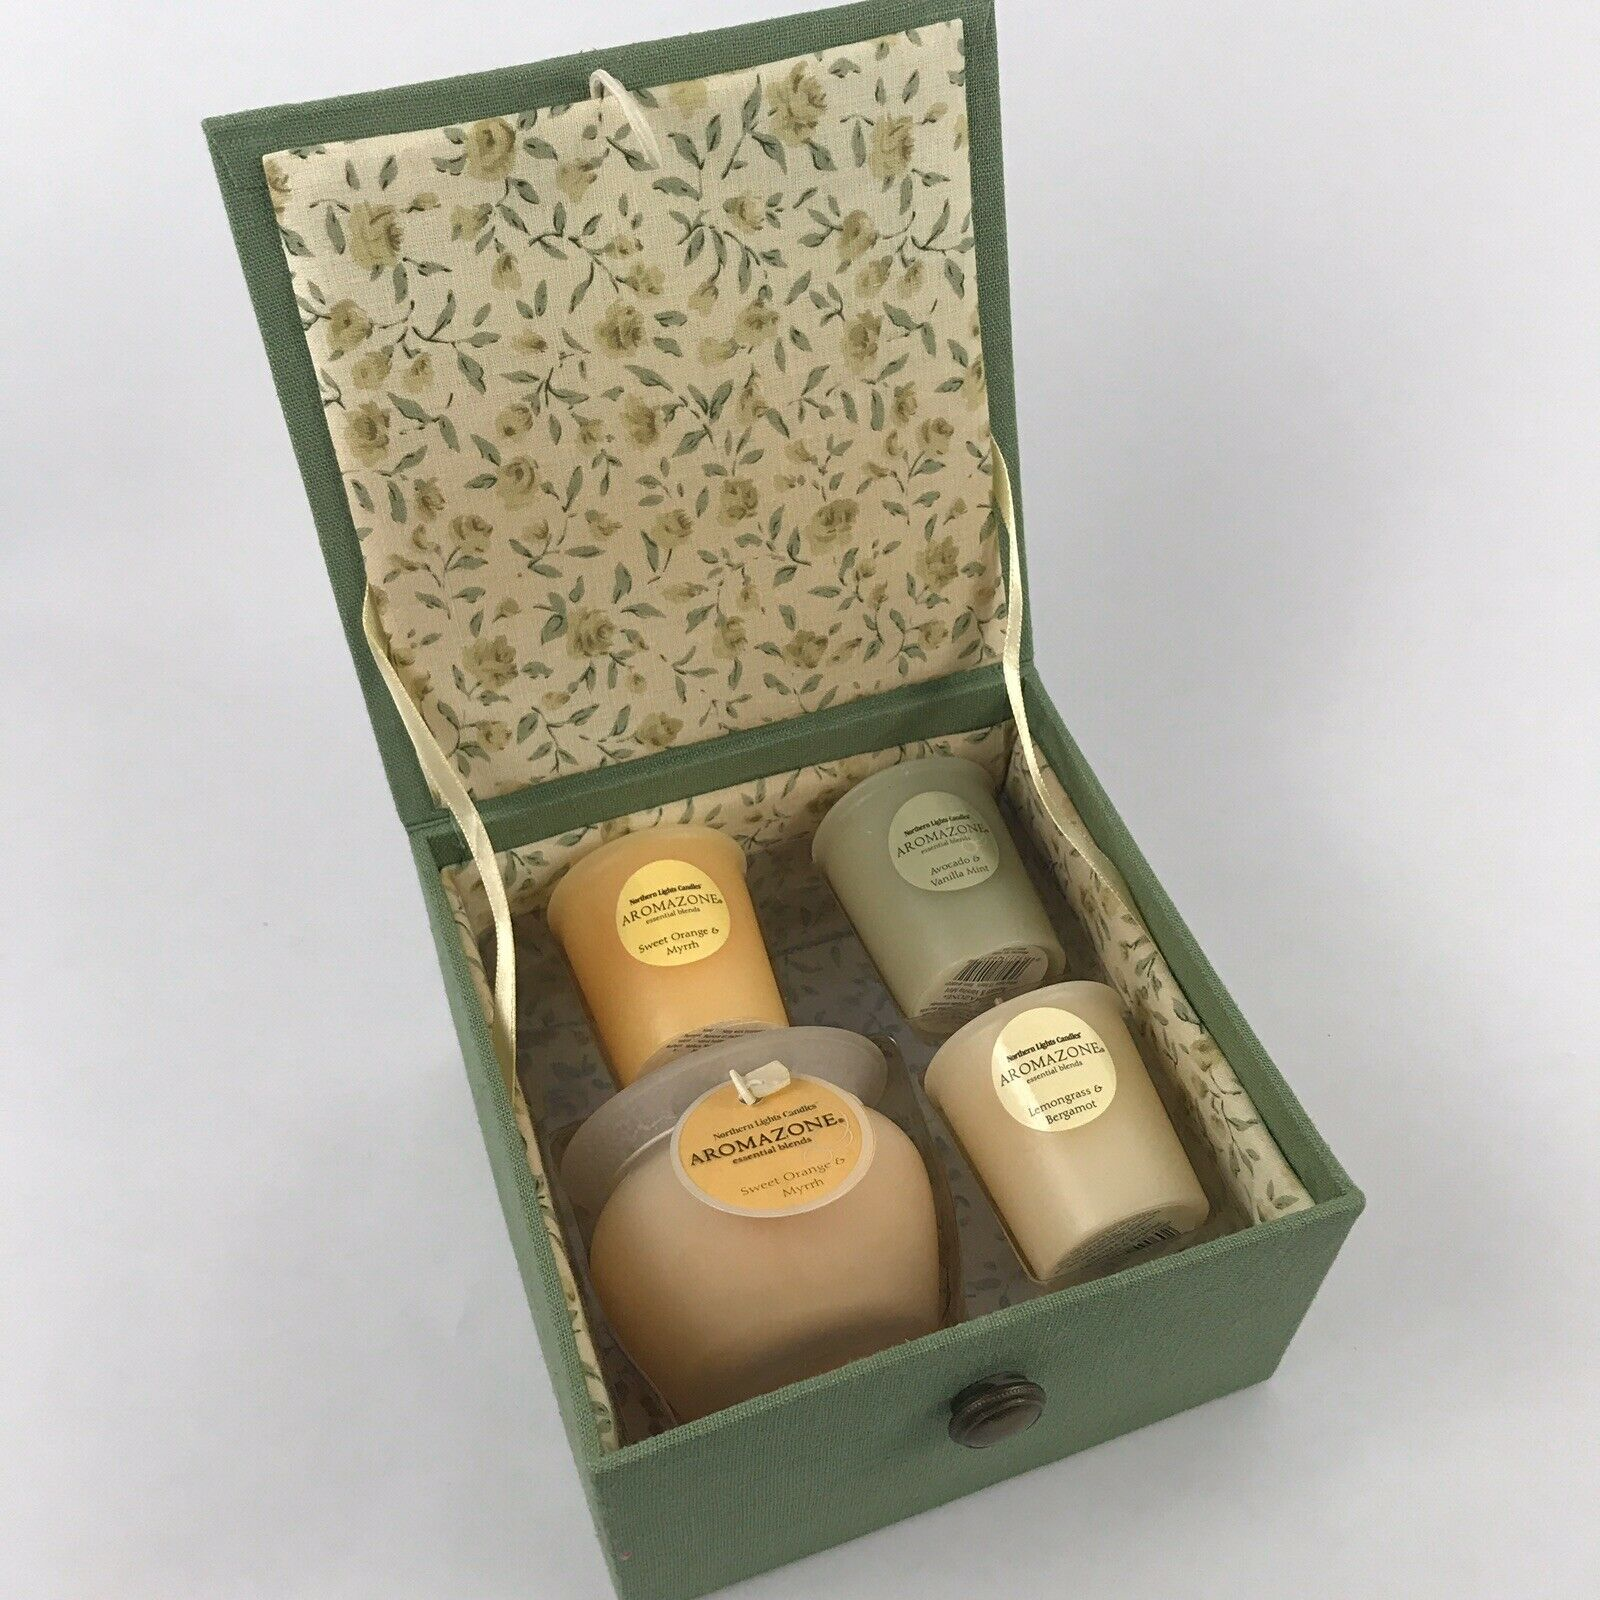 Northern Lights Candles Nlc Wide Tapers 12Pc Box Moss Green 10 Inch